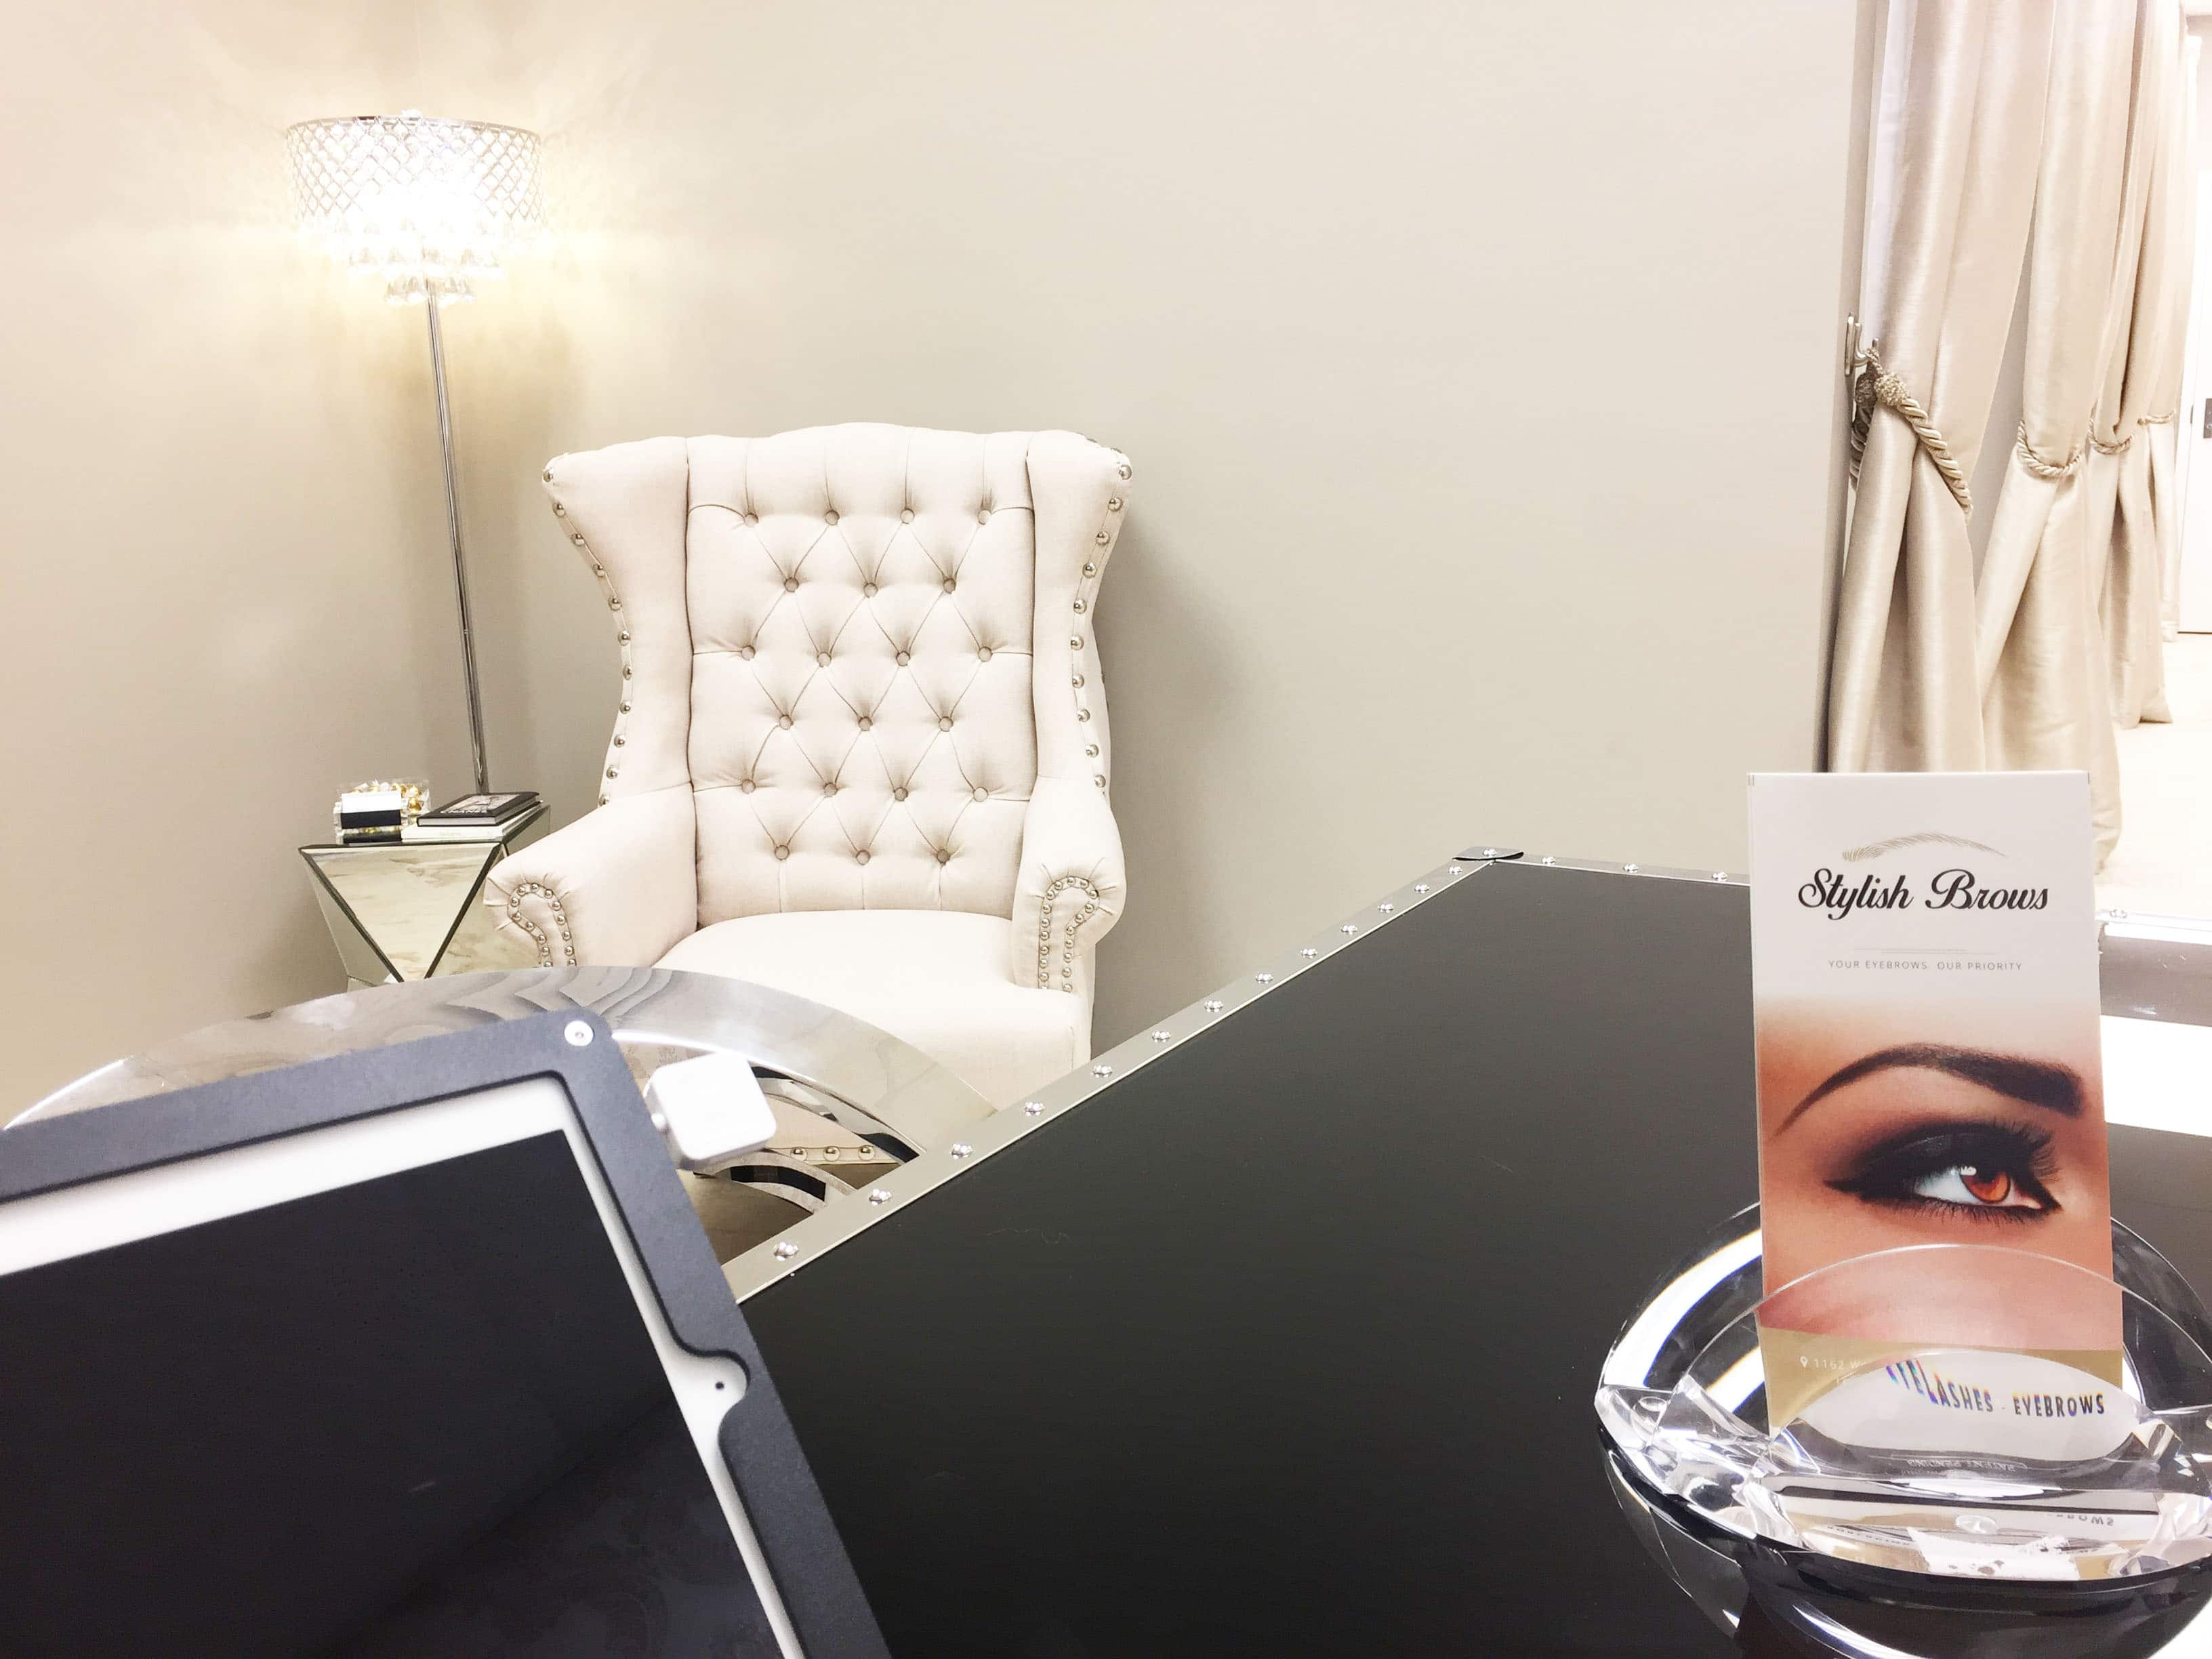 stylish-brows-microblading-eyebrows-eyelashes-salon-weston-miami-interior-chair-desk